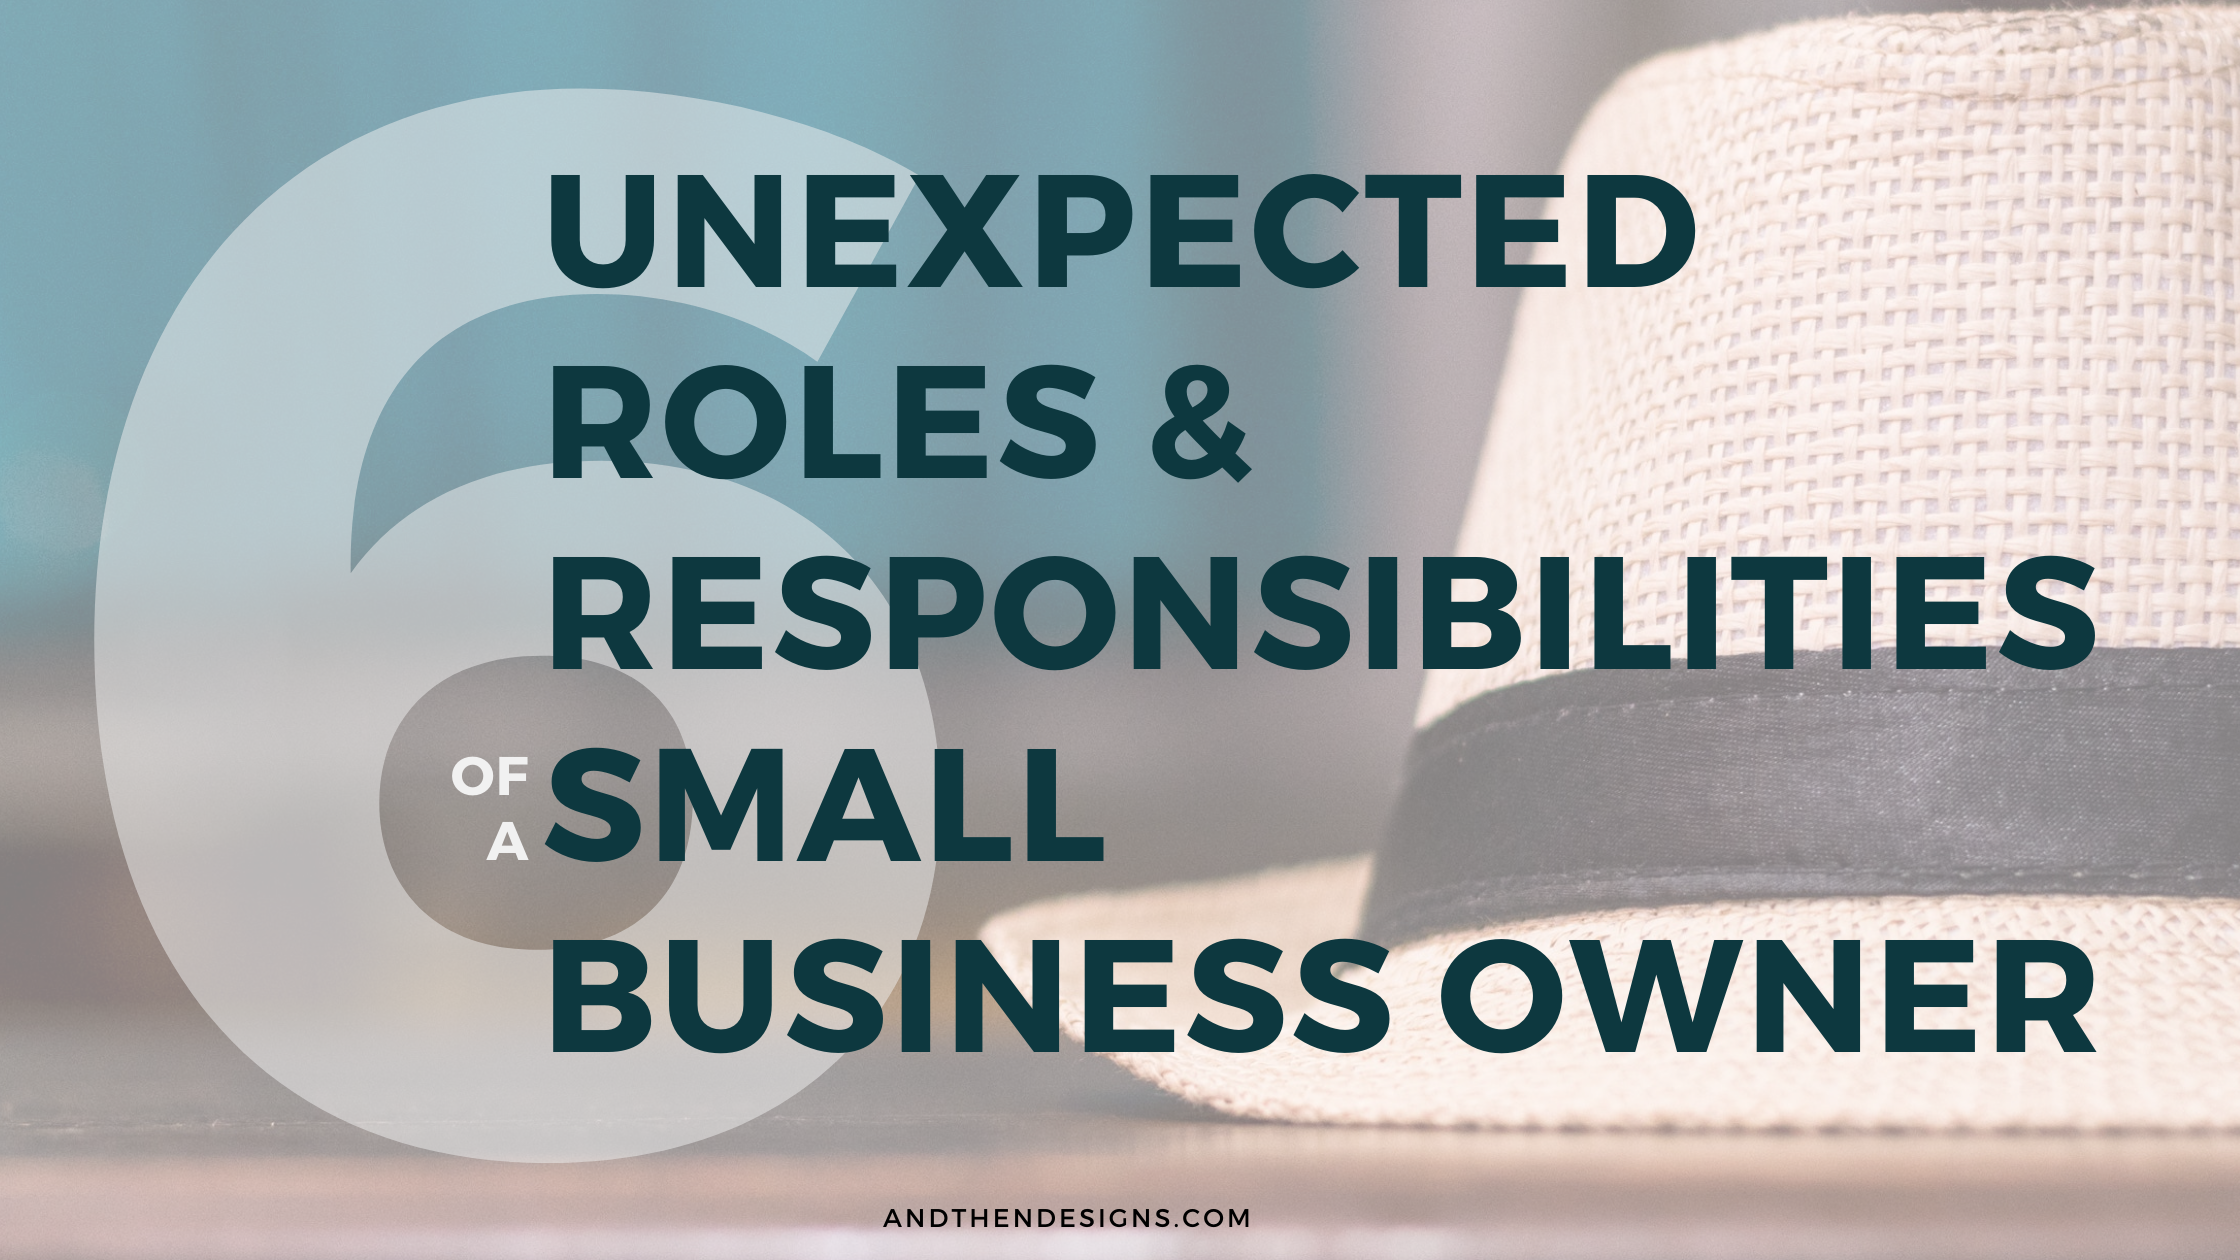 Six Unexpected Roles & Responsibilities Of A Small Business Owner